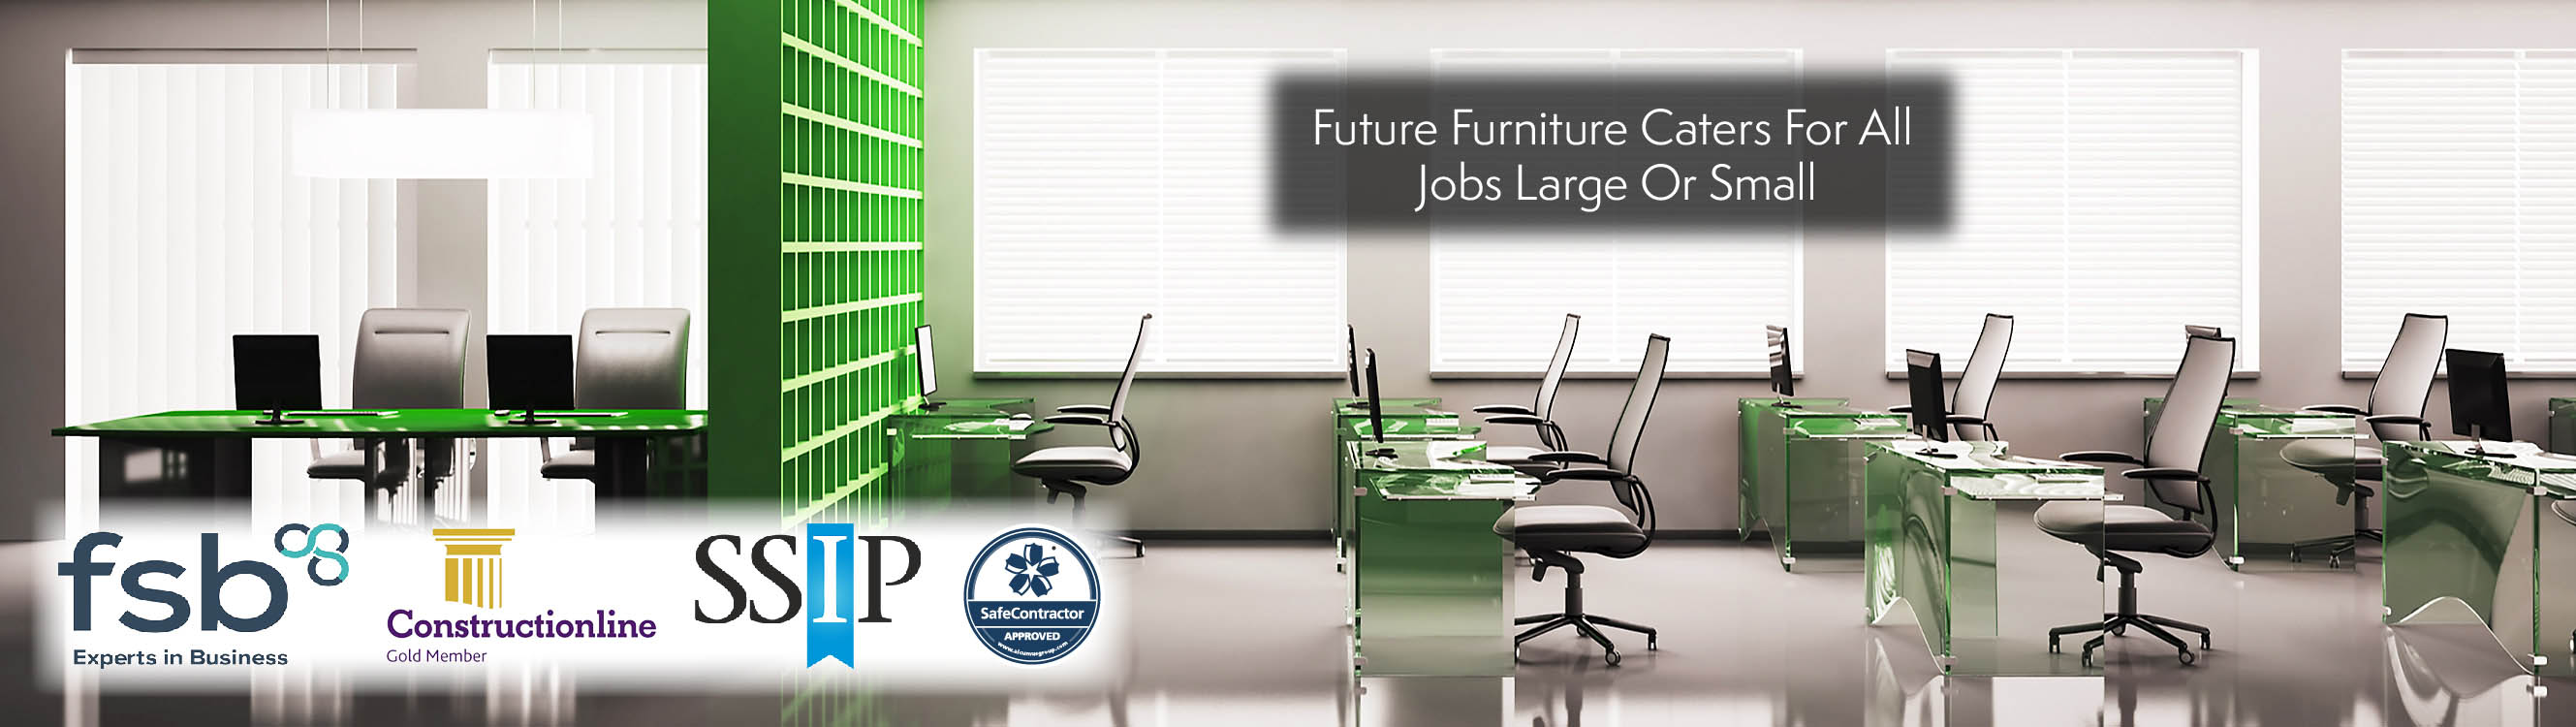 Future Furniture Caters For All Jobs